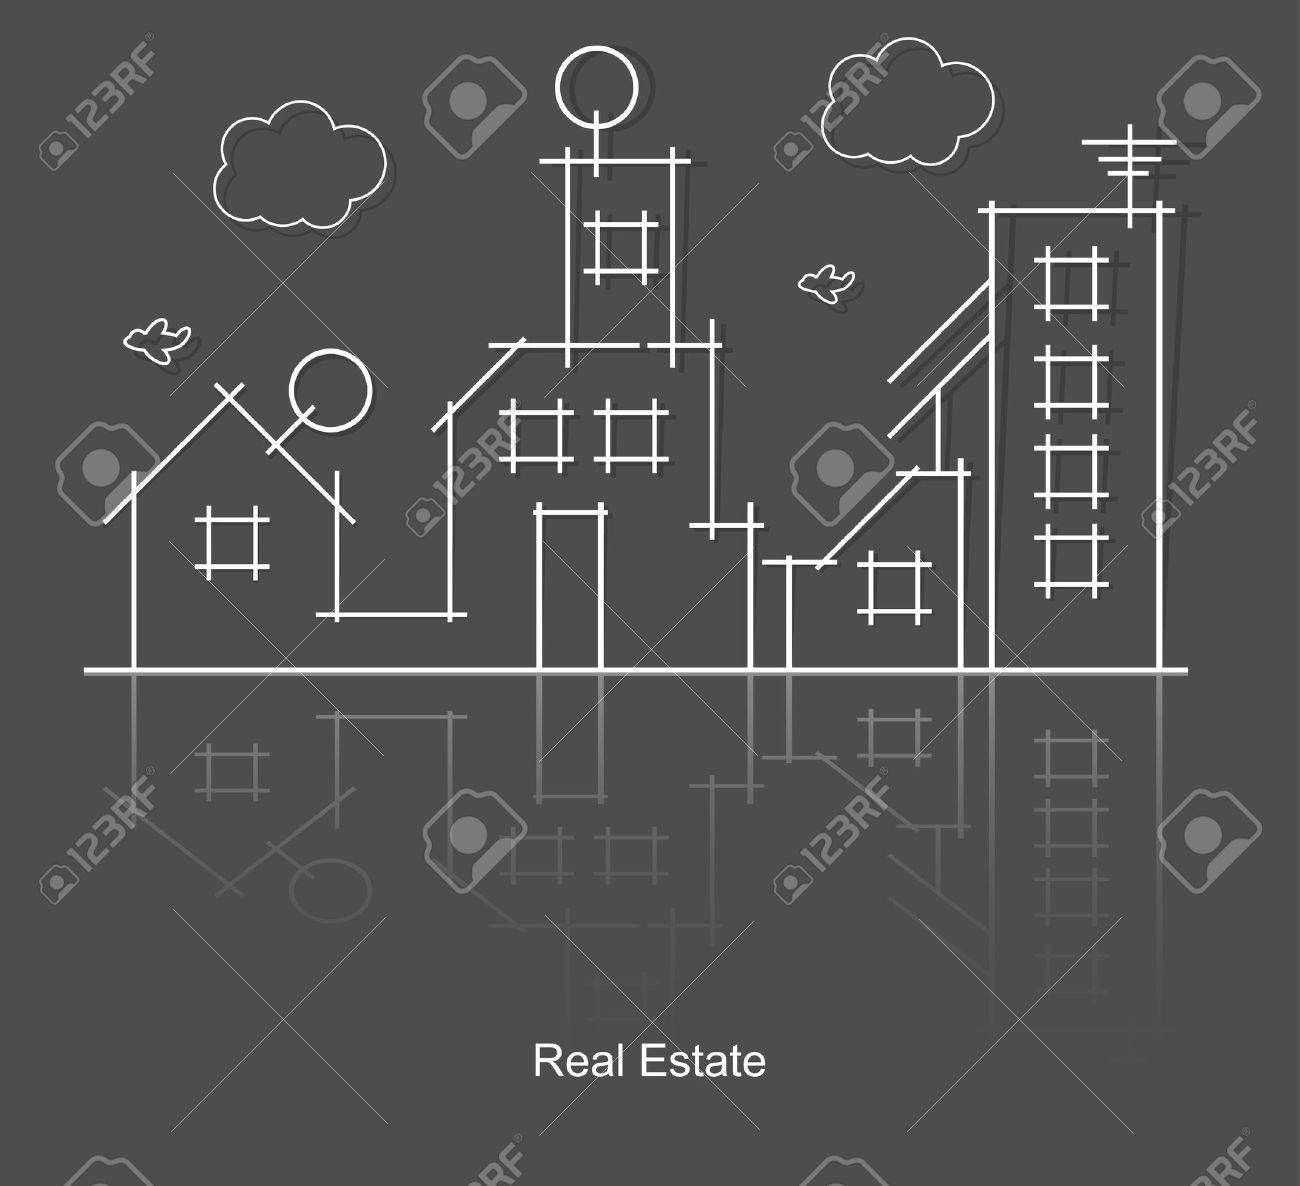 city real estate circuit project Stock Vector - 13768130